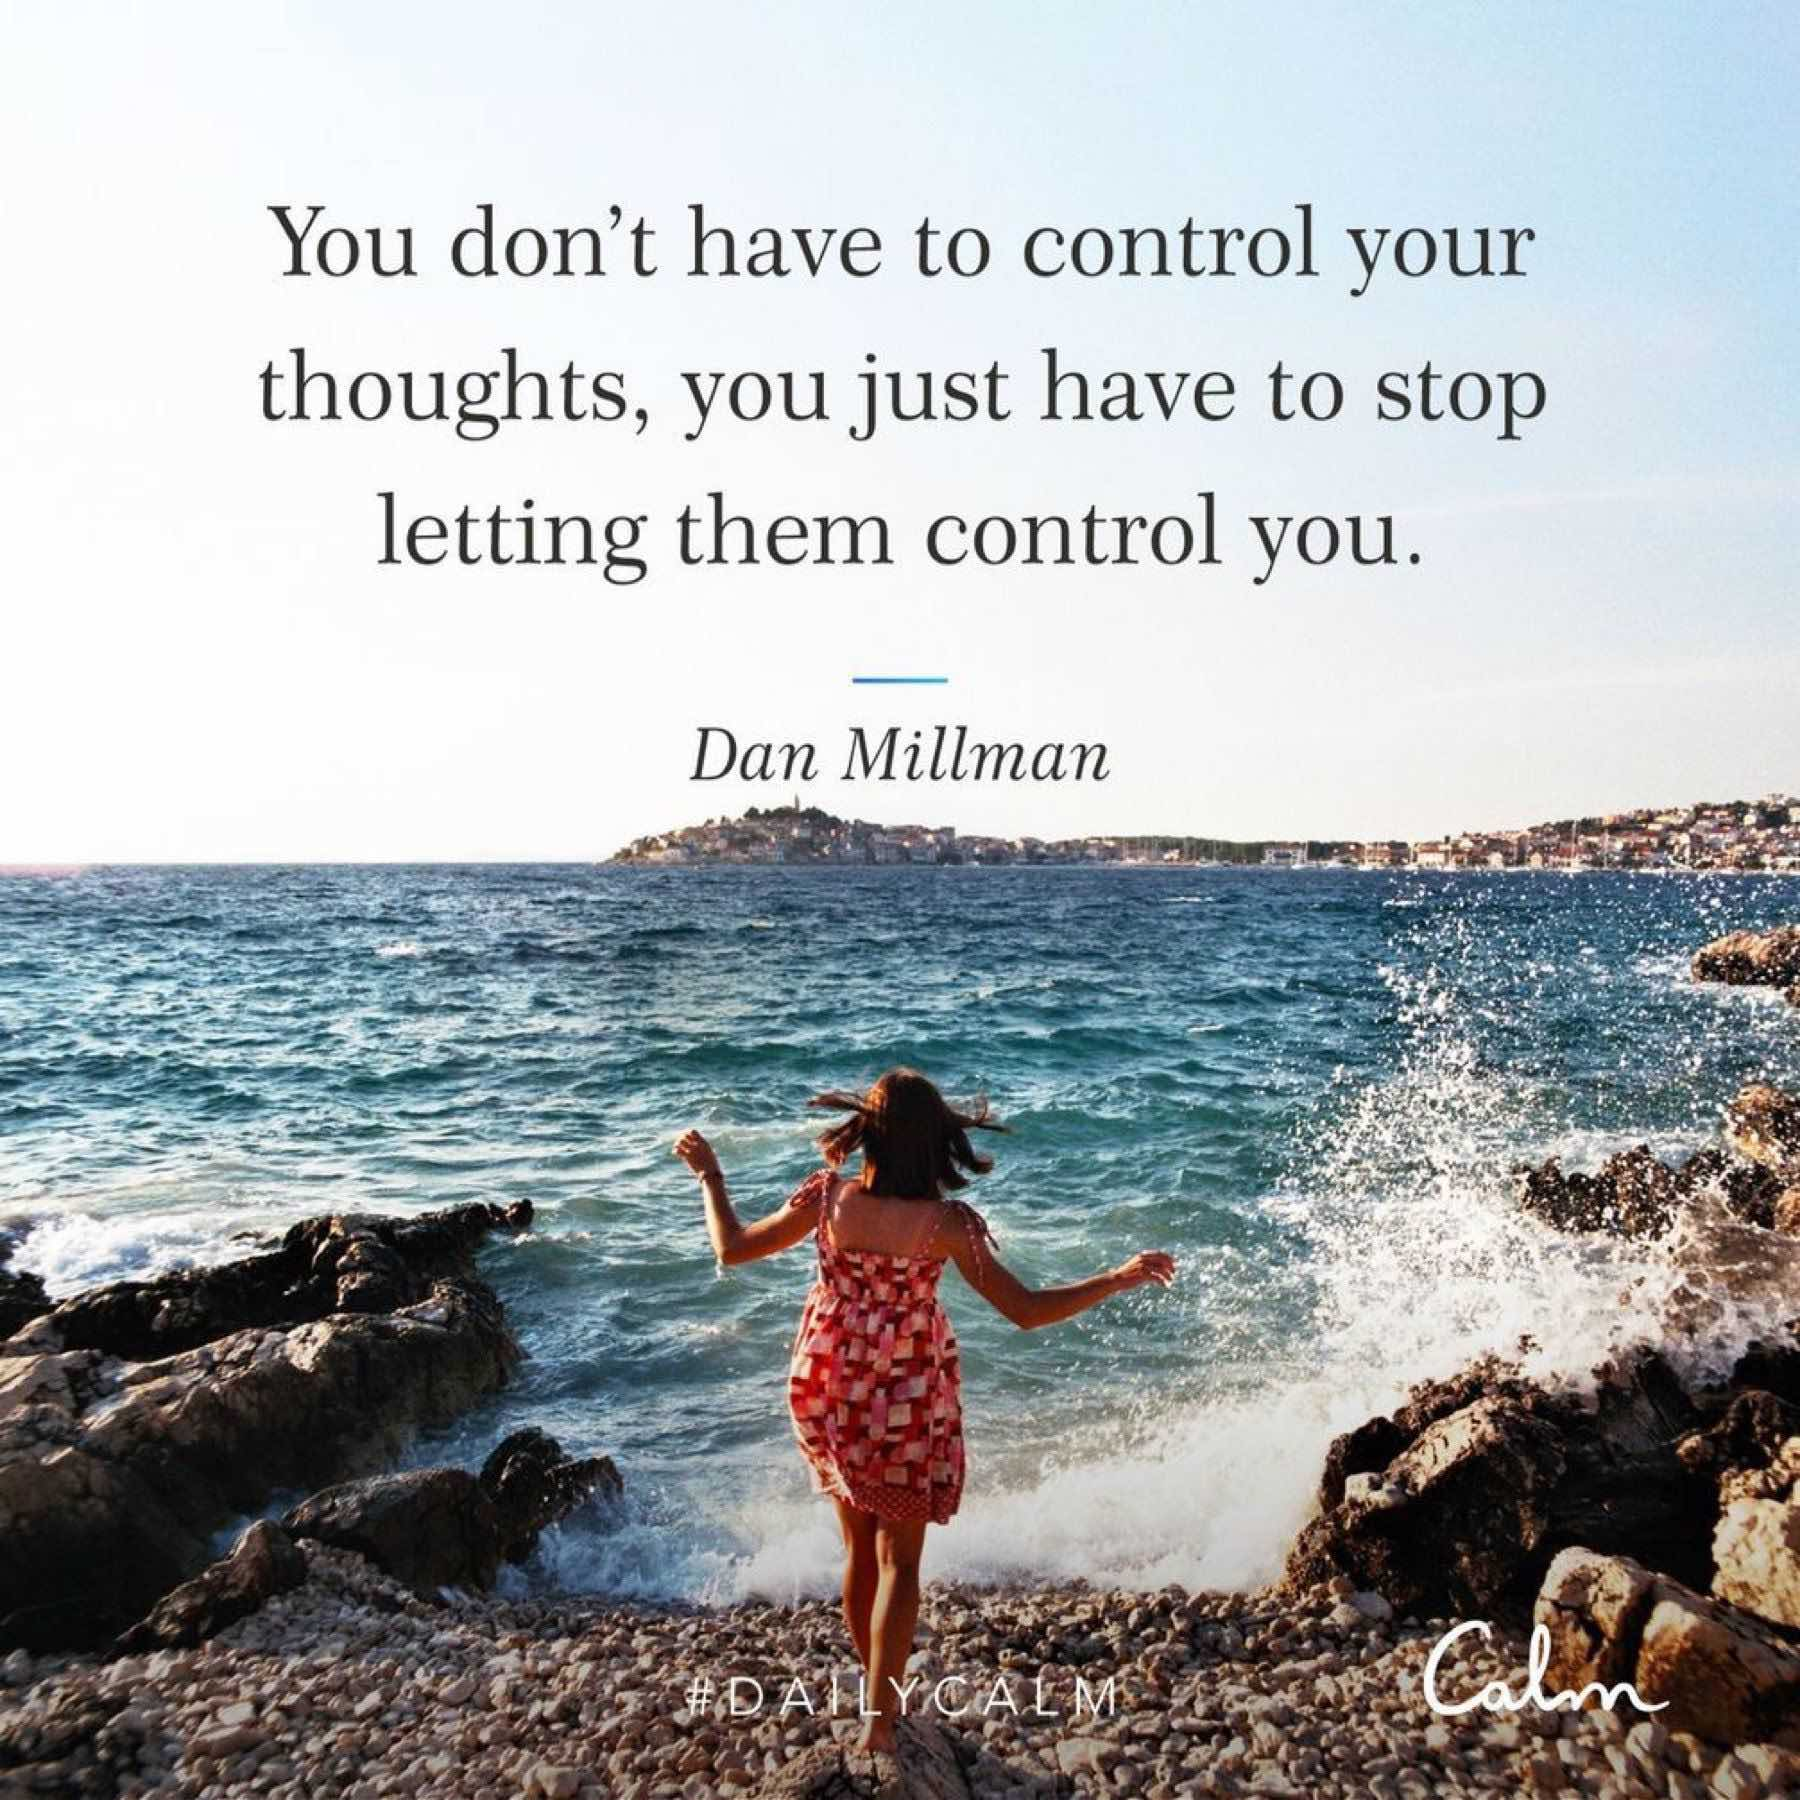 You don't have to control your thoughts, you just have to stop letting them control you